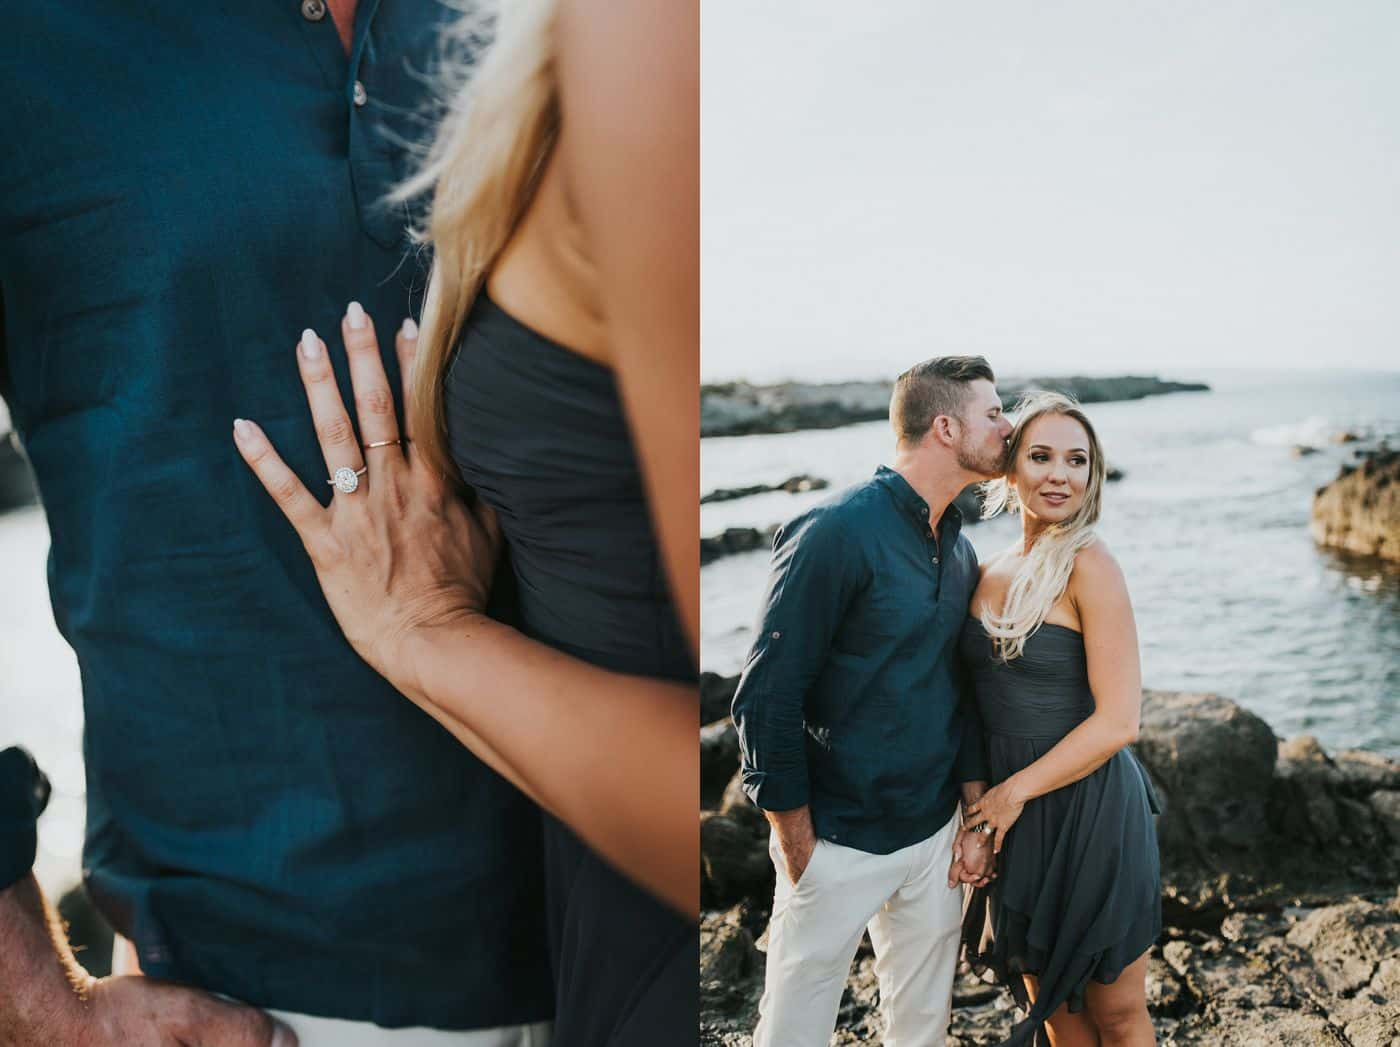 Proposal Photo Tricks With A Professional Photographer